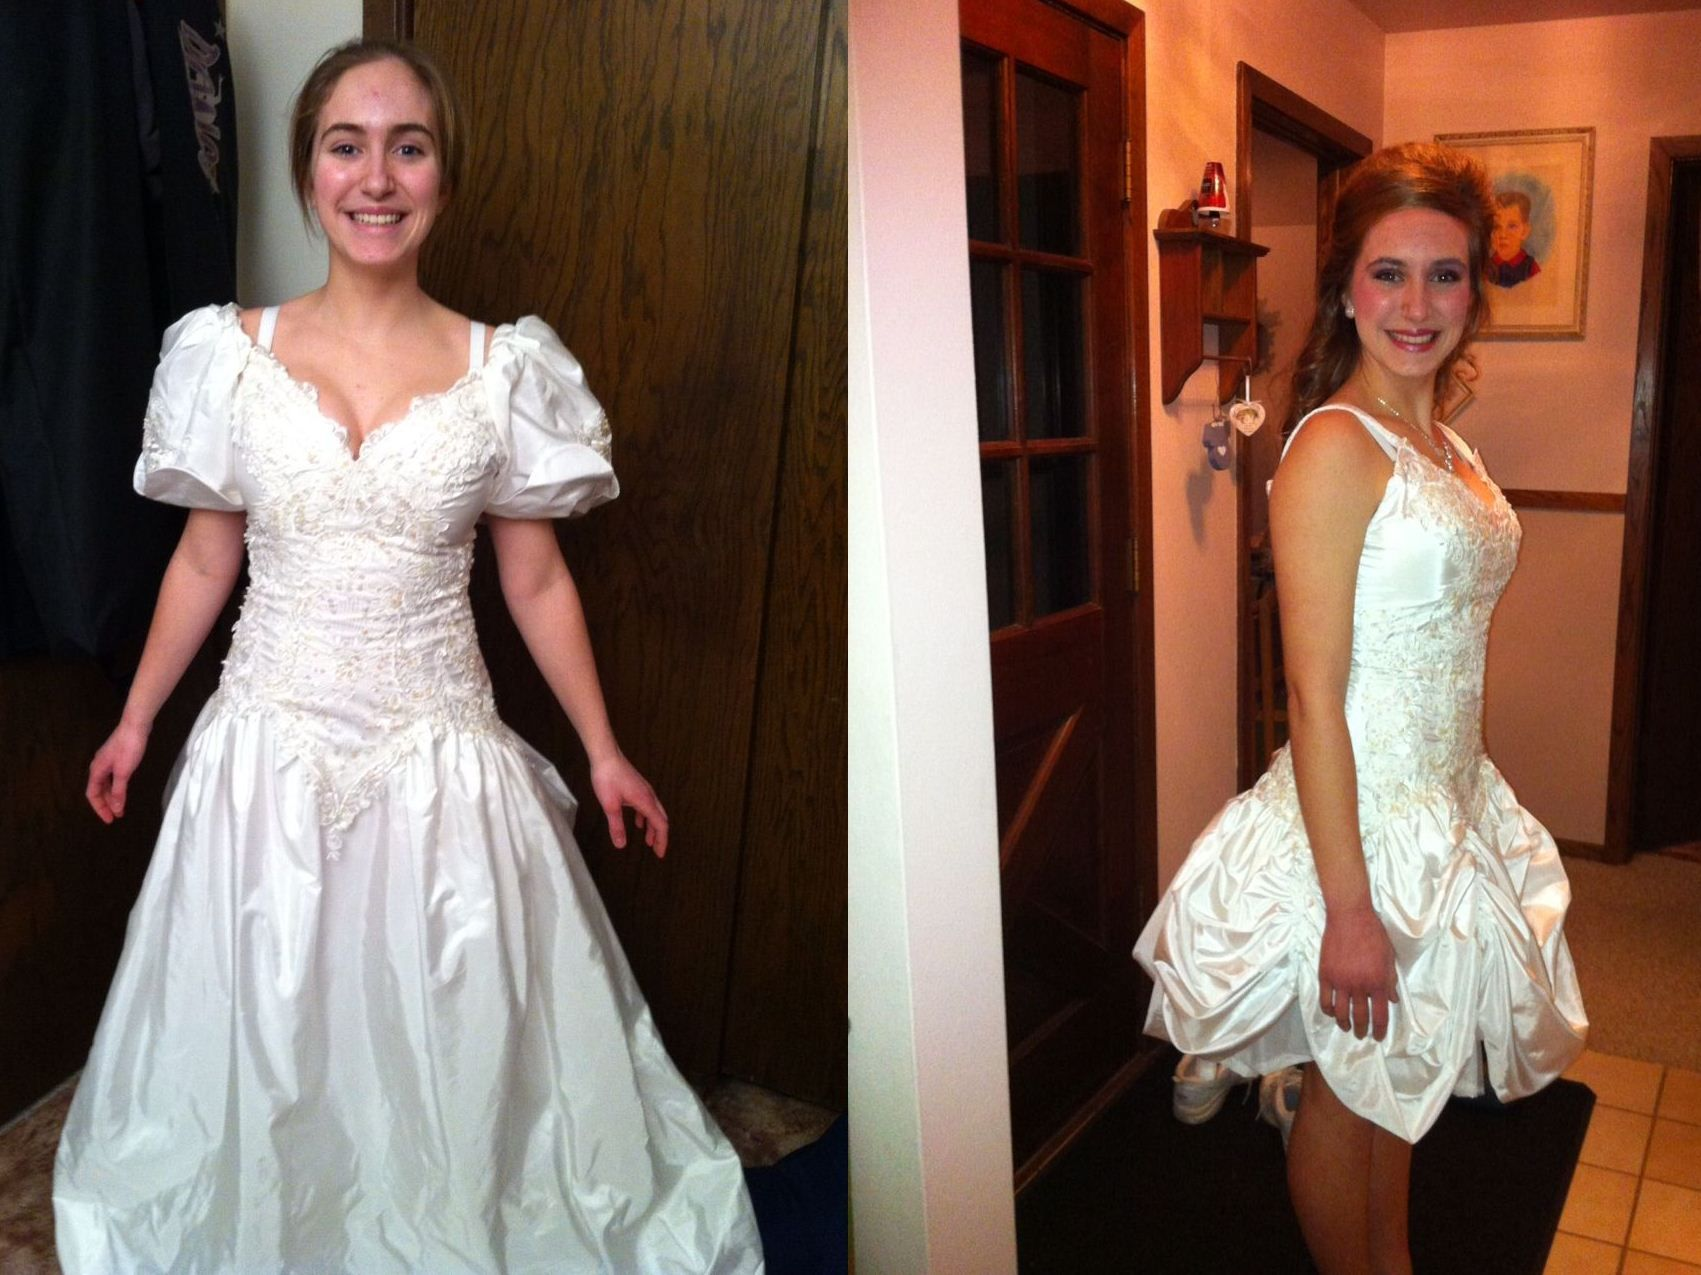 A re-purposed wedding dress for a teenager to go to the school dance. Very  Unique.